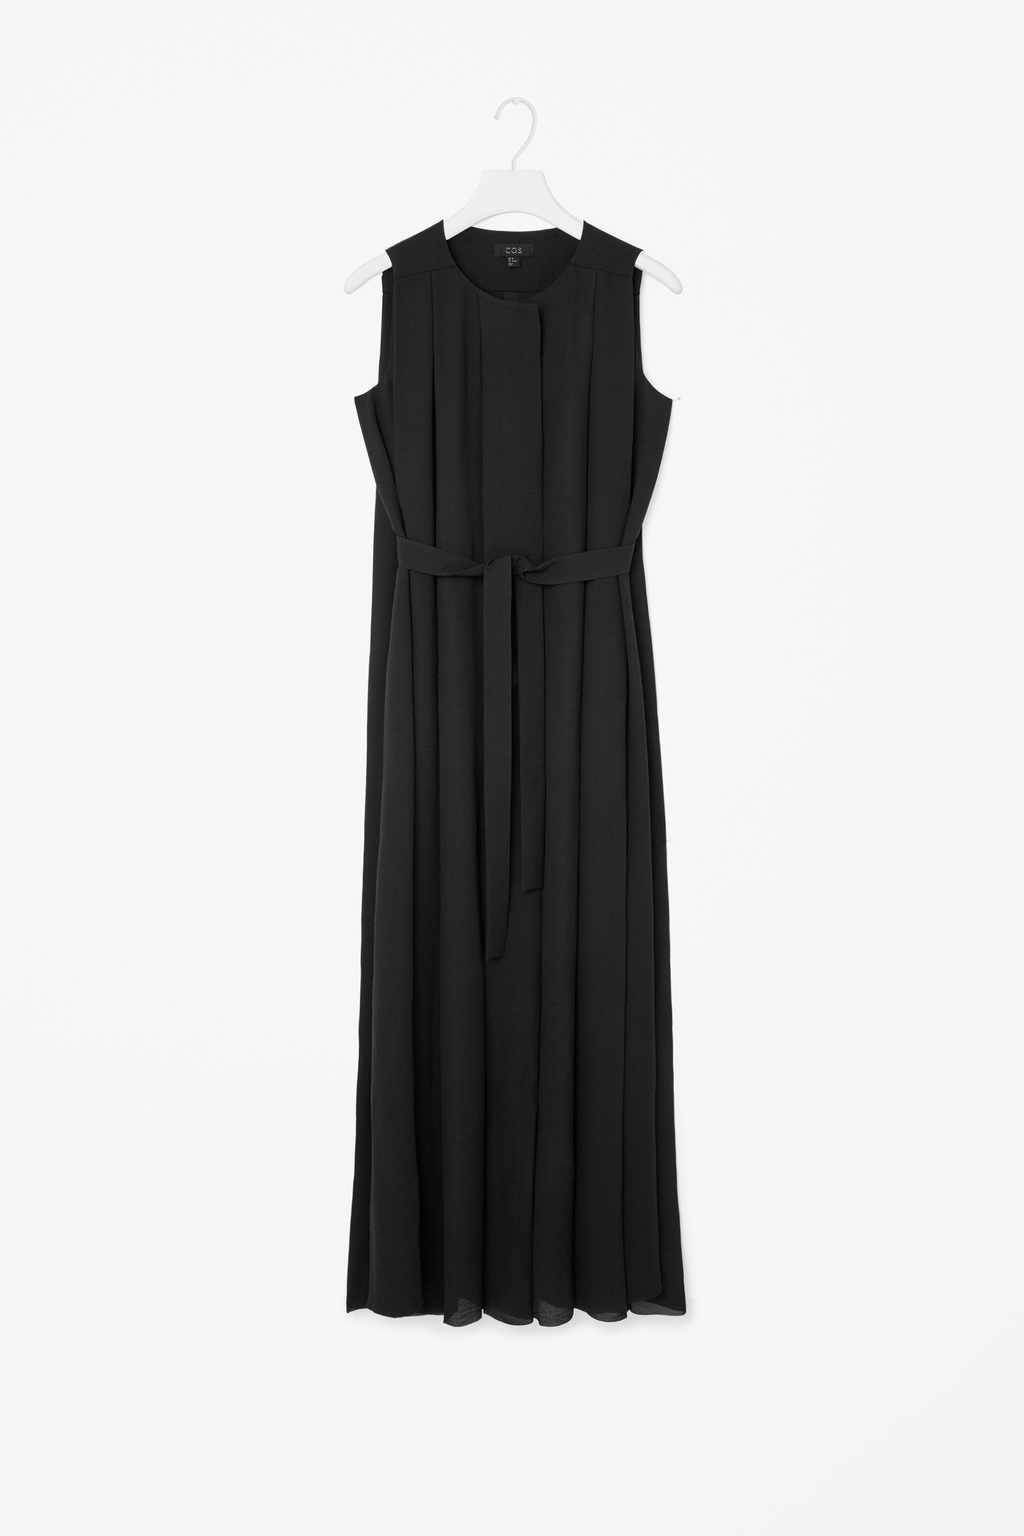 Tie Waist Pleated Dress - style: shift; length: calf length; neckline: round neck; pattern: plain; sleeve style: sleeveless; waist detail: belted waist/tie at waist/drawstring; predominant colour: black; occasions: casual, creative work; fit: body skimming; fibres: polyester/polyamide - 100%; hip detail: adds bulk at the hips; sleeve length: sleeveless; pattern type: fabric; pattern size: standard; texture group: other - light to midweight; season: s/s 2016; wardrobe: basic